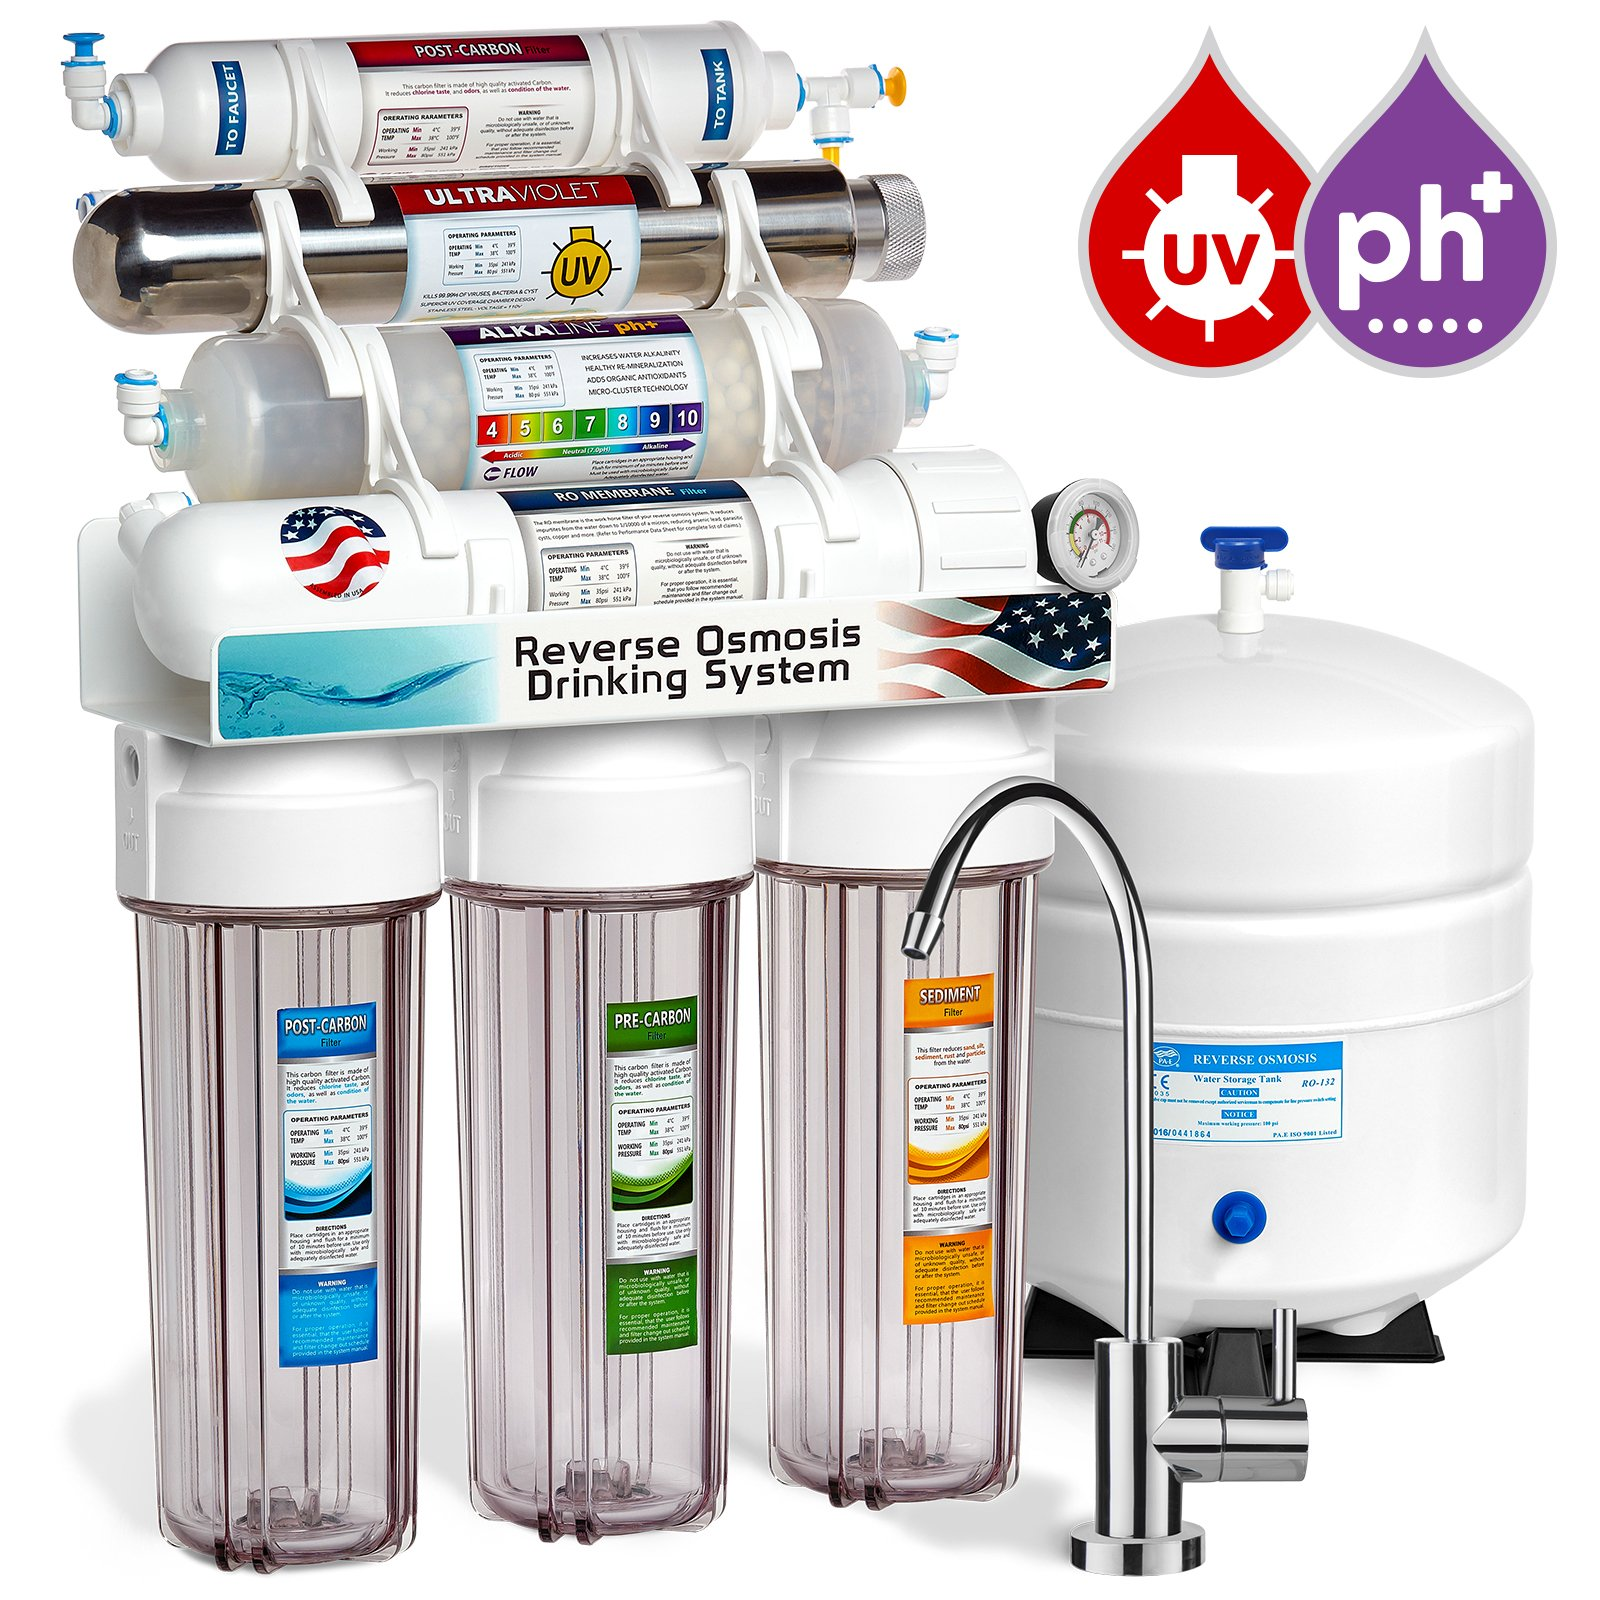 Express Water 11 Stage UV Ultraviolet + Alkaline + Reverse Osmosis Home Drinking Water Filtration System 100 GPD RO Membrane Filter - Modern Faucet - Clear Housing - Pressure Gauge